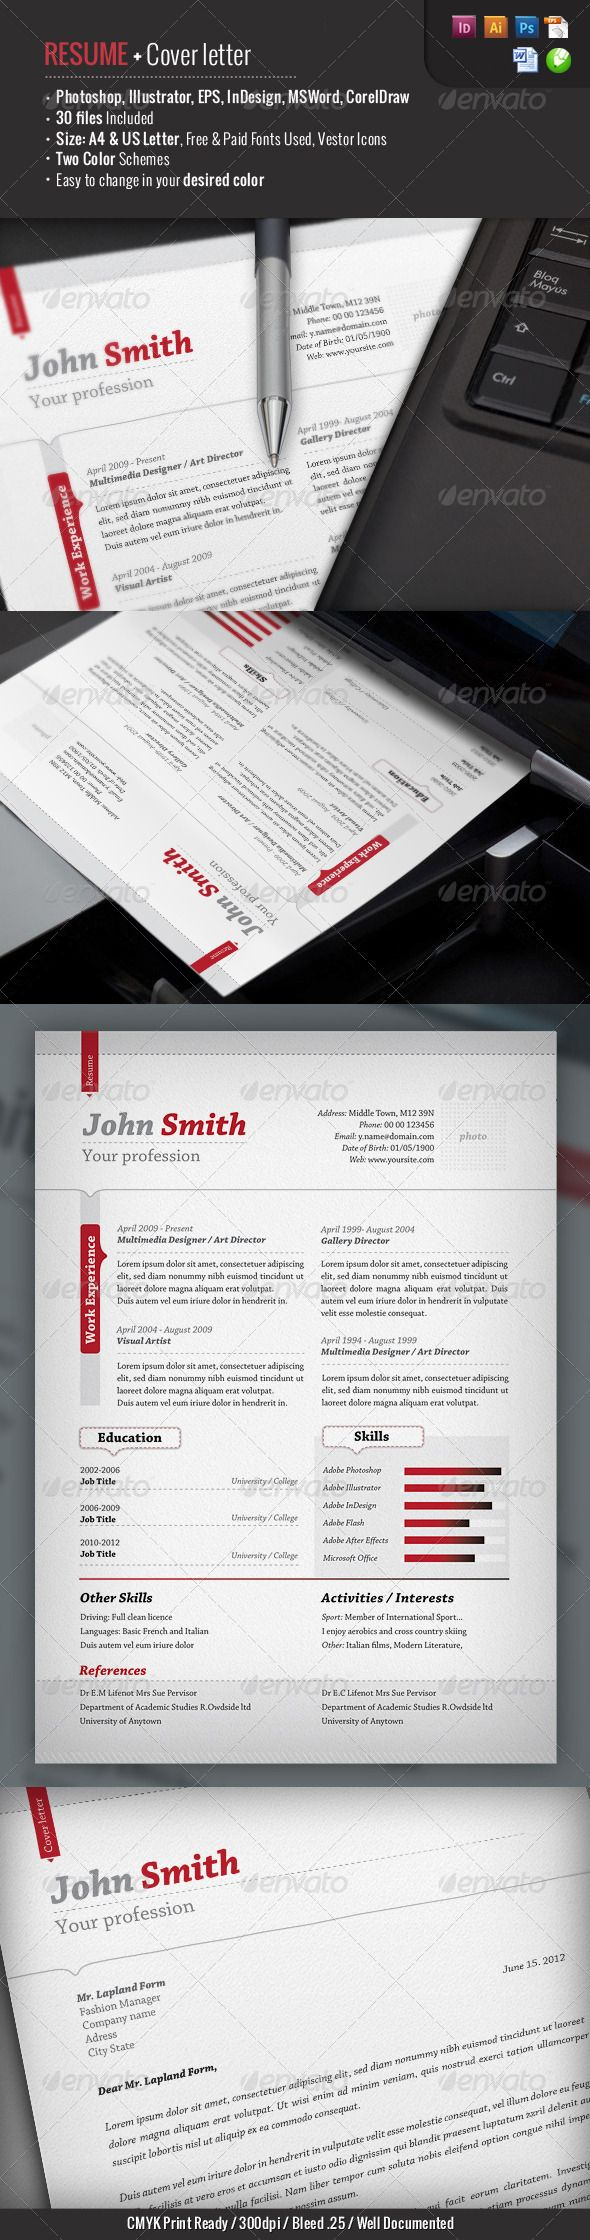 Standard Resume Font 30 Best Templates Images On Pinterest  Patterns Cob Loaf And .